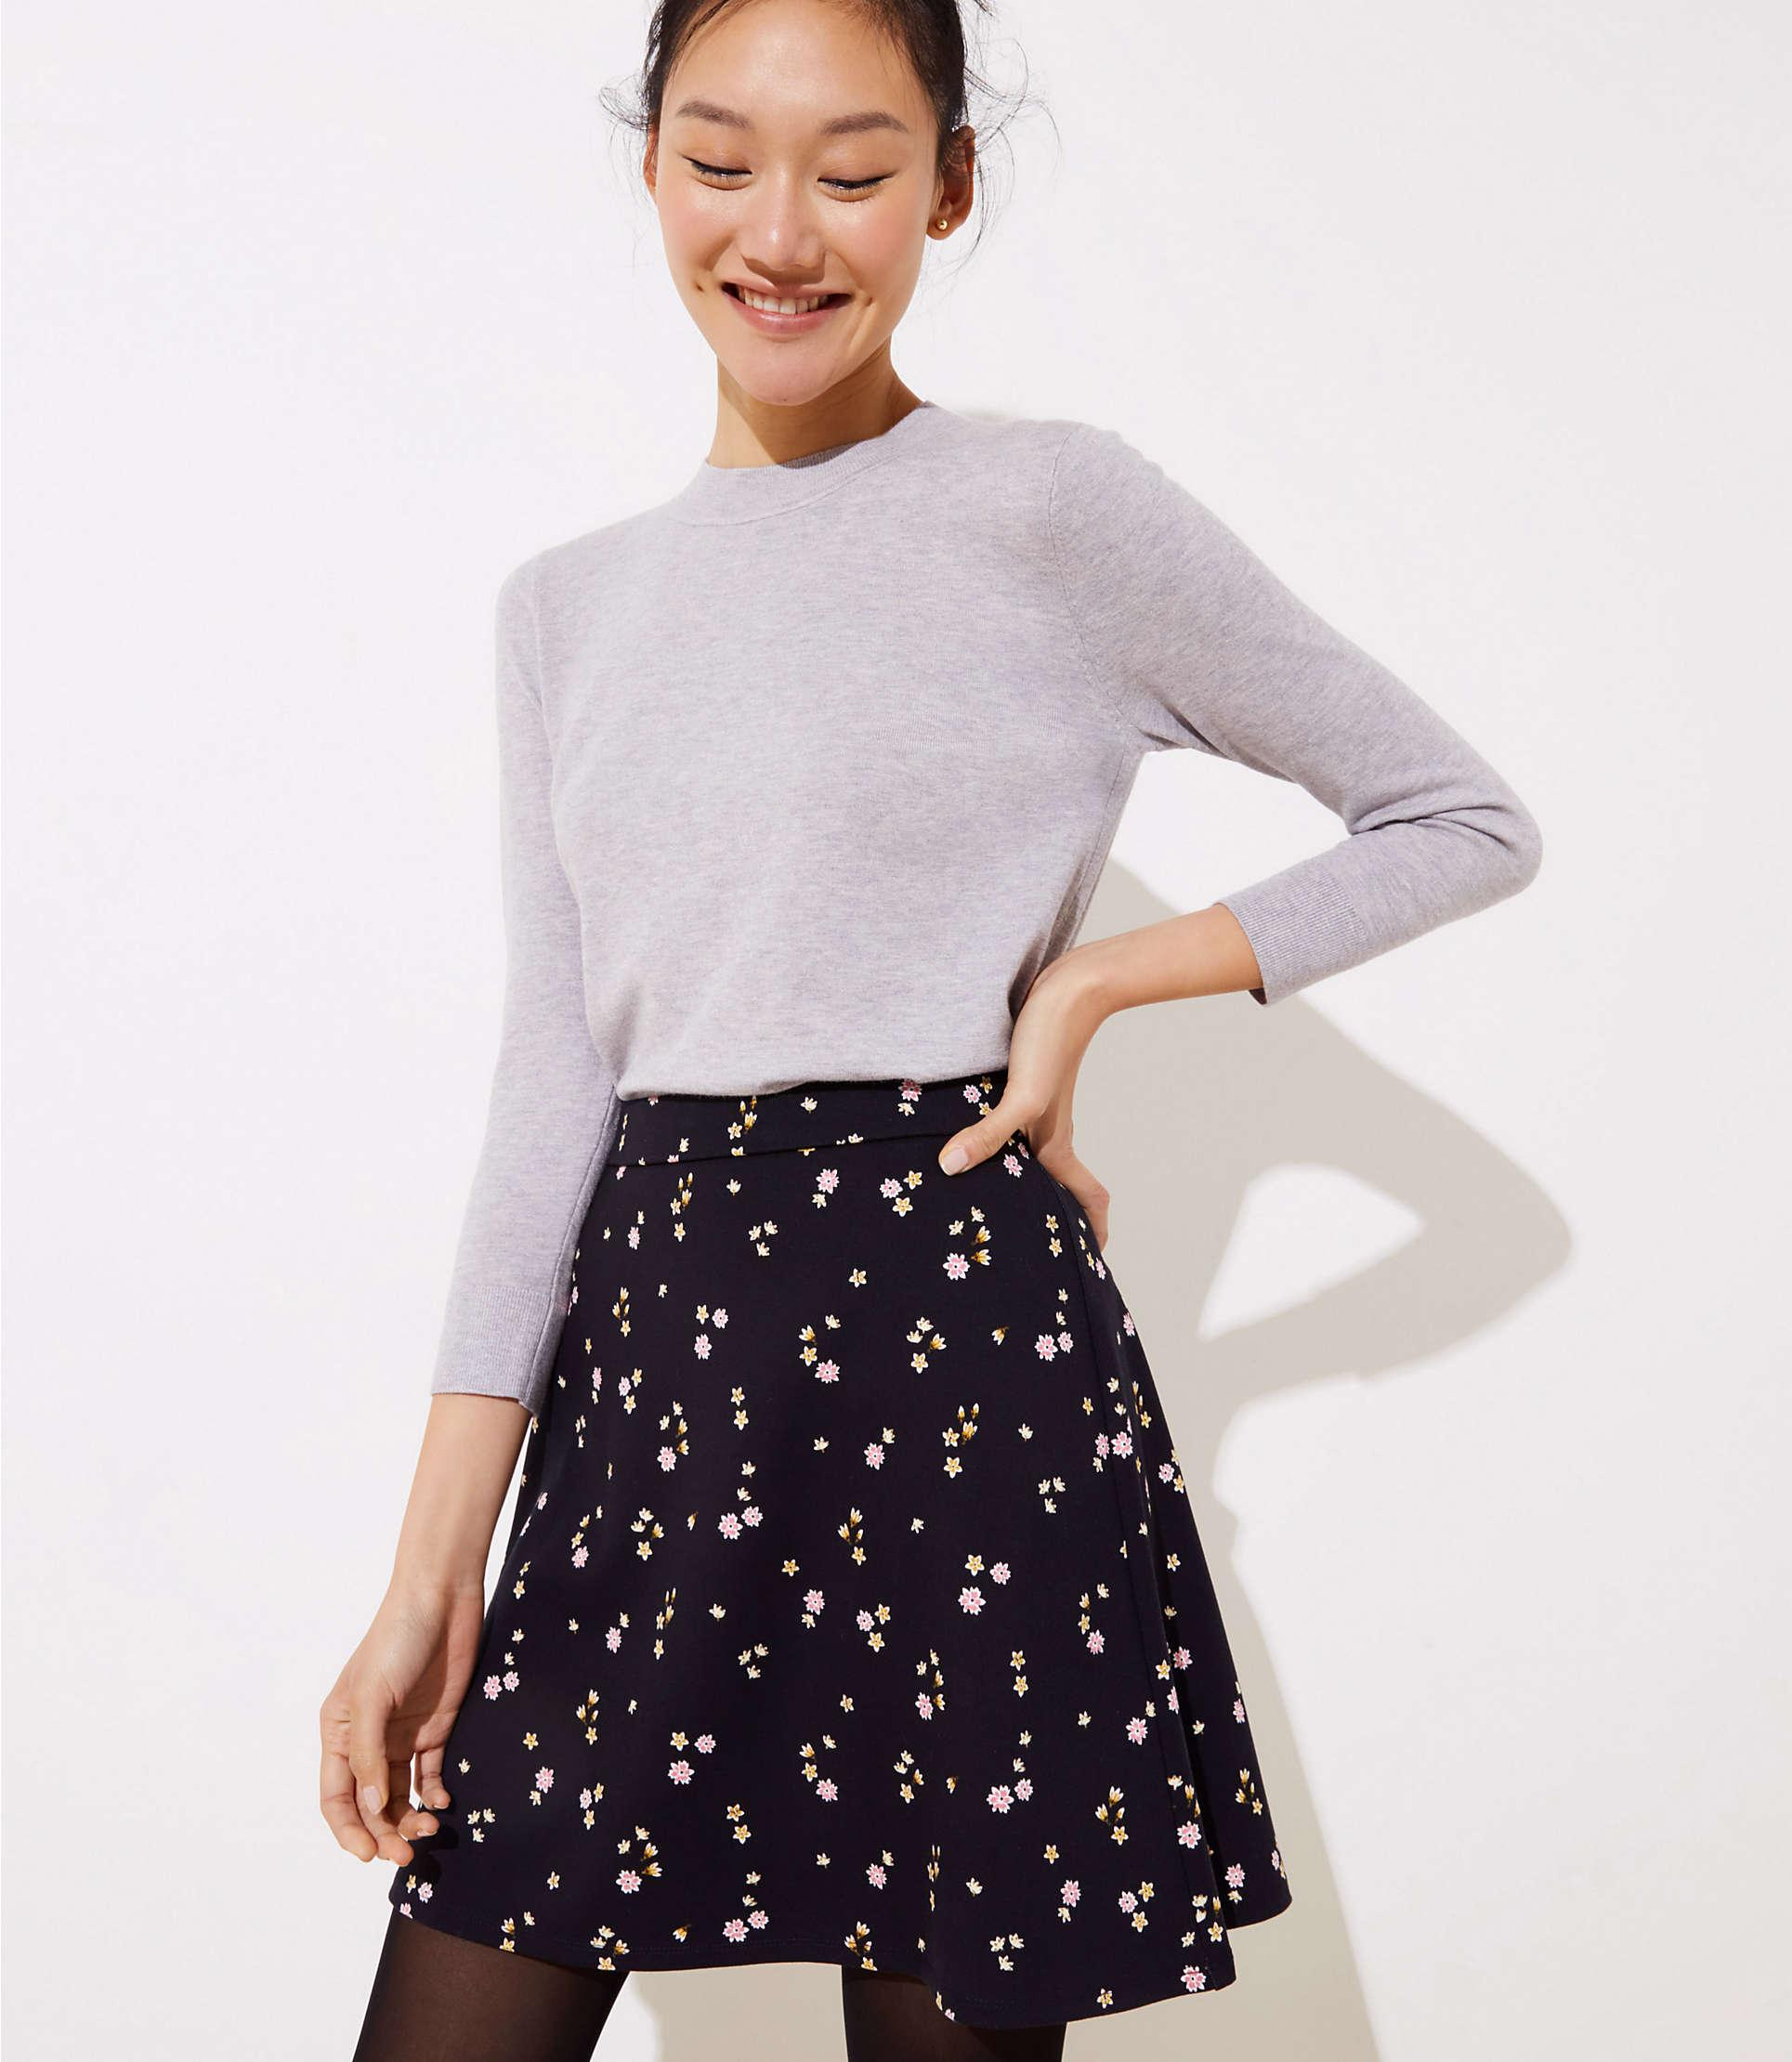 42d07ca7a5d Lyst - Loft Floral Ponte Flippy Skirt in Black